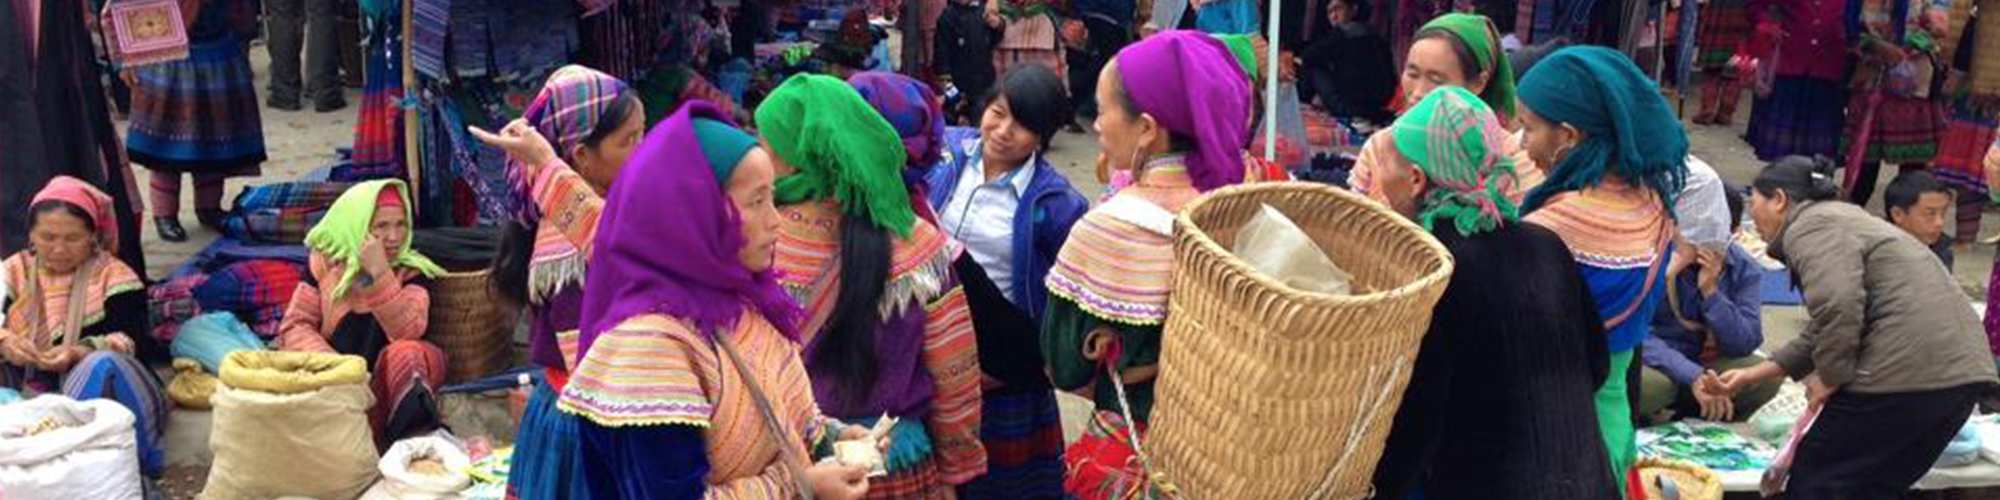 Bac Ha Sunday market in Vietnam